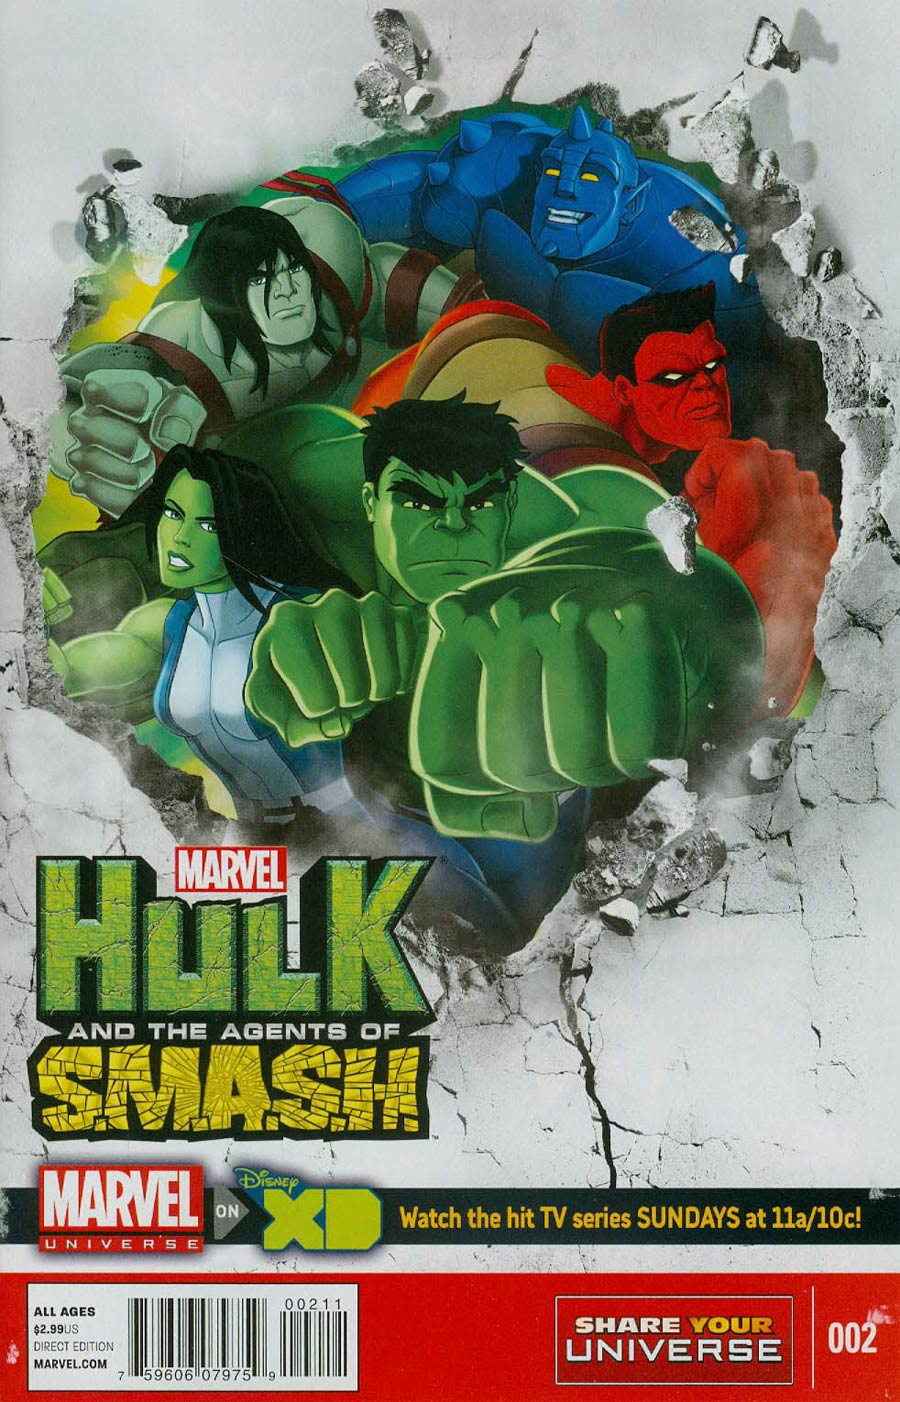 Marvel Universe Hulk And The Agents Of S.M.A.S.H. #2